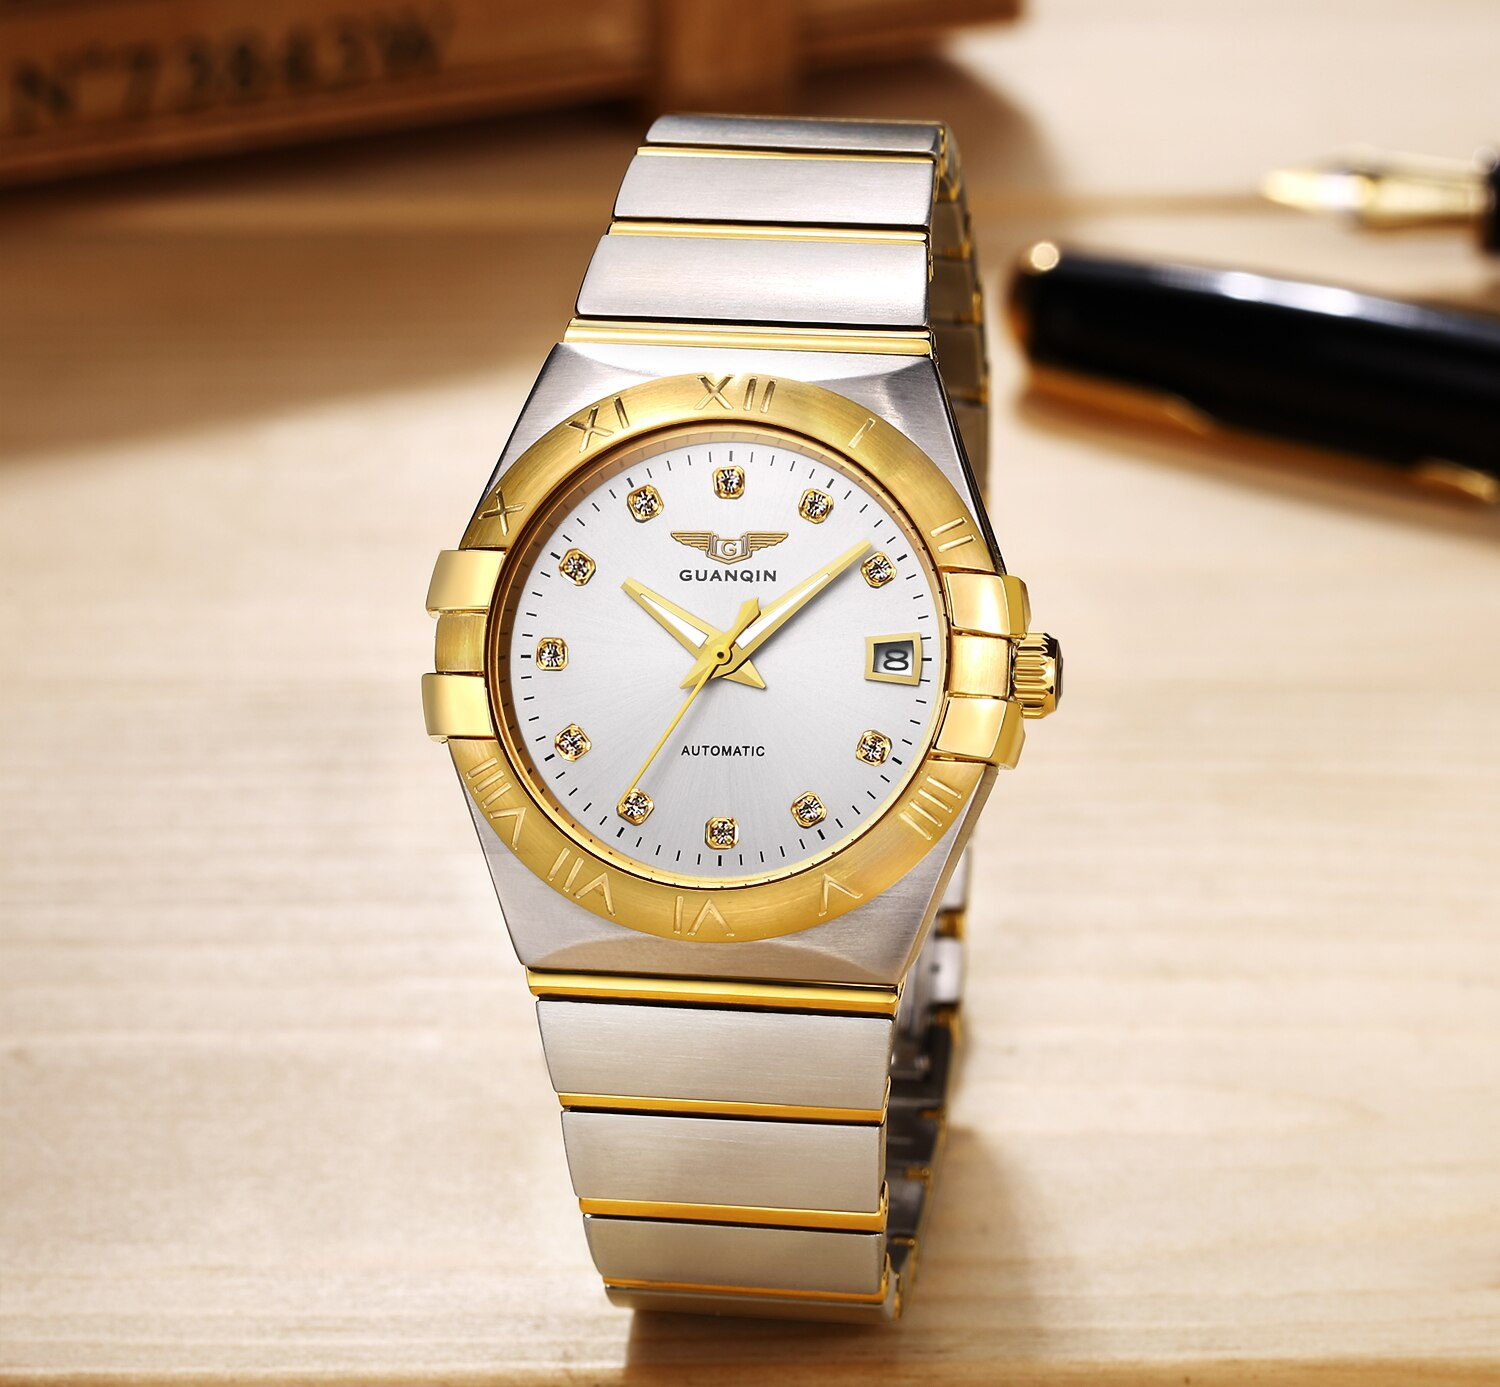 Guanqin Design Luxury Men Watches Mechanical Automatic Gold Watch 30m Waterproof Casual Constellatio